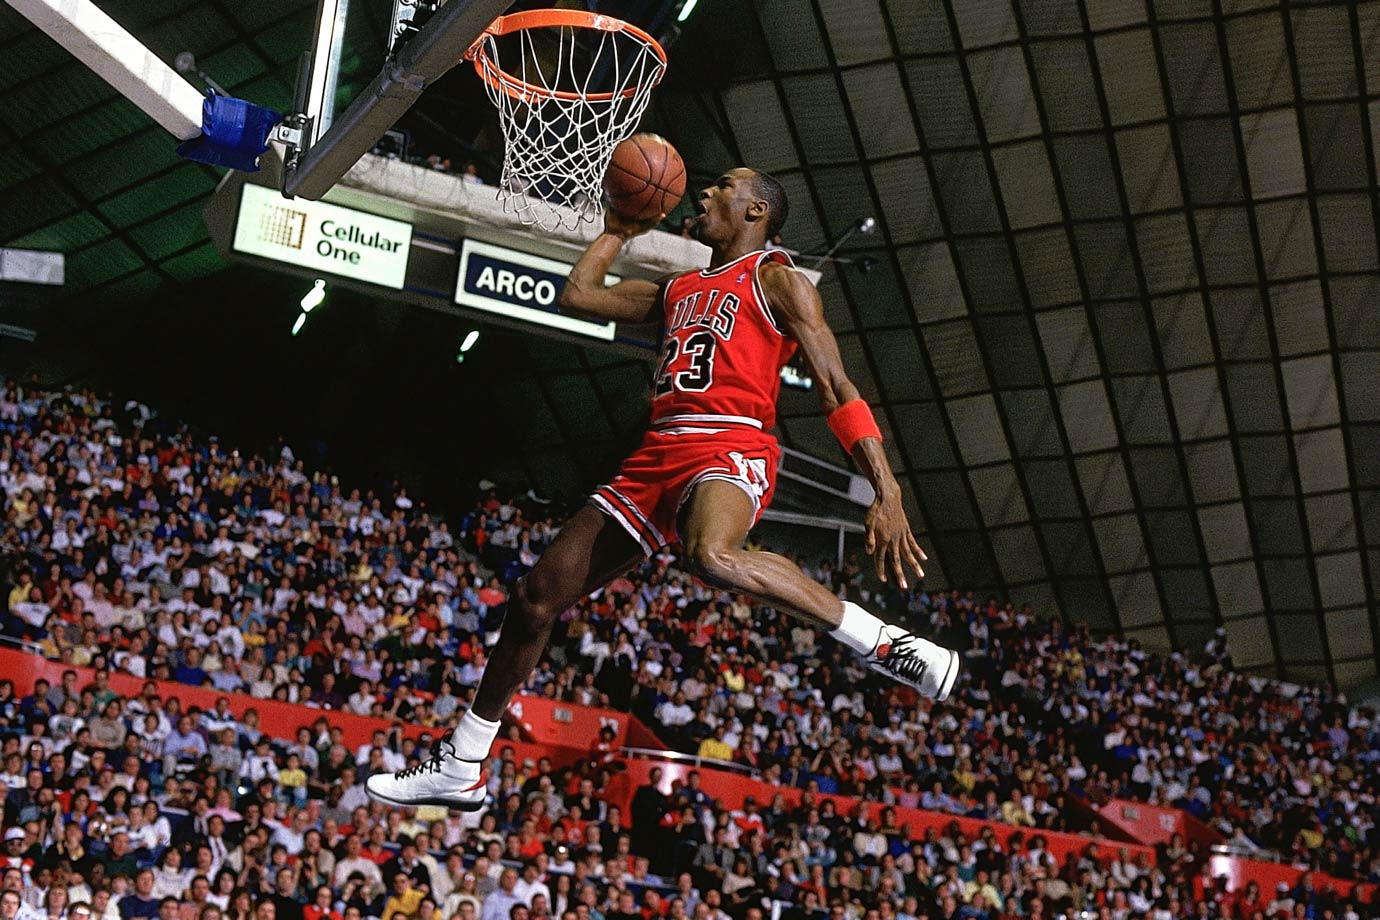 Michael Jordan goes up for a dunk during the 1987 NBA All-Star Slam Dunk Contest.